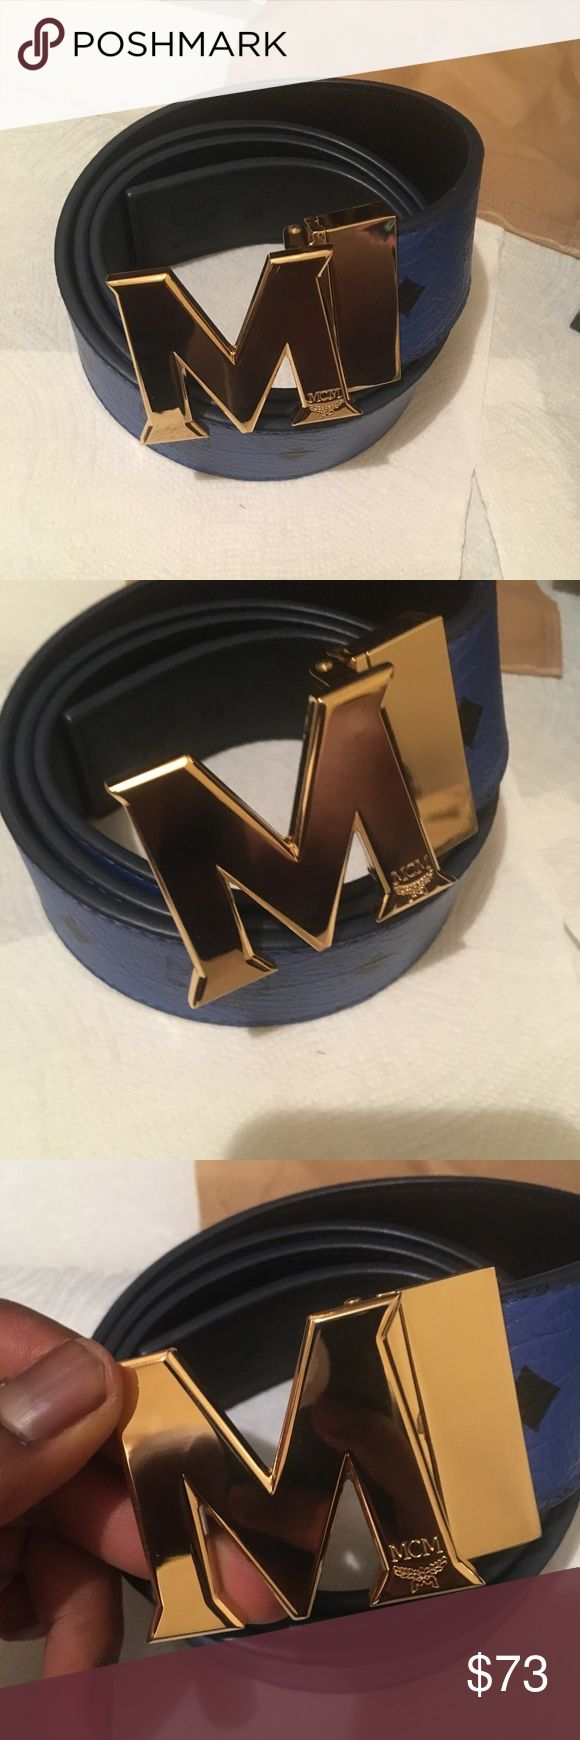 Spotted while shopping on Poshmark: Blue reversible mcm belt with a gold buckle! #poshmark #fashion #shopping #style #MCM #Accessories